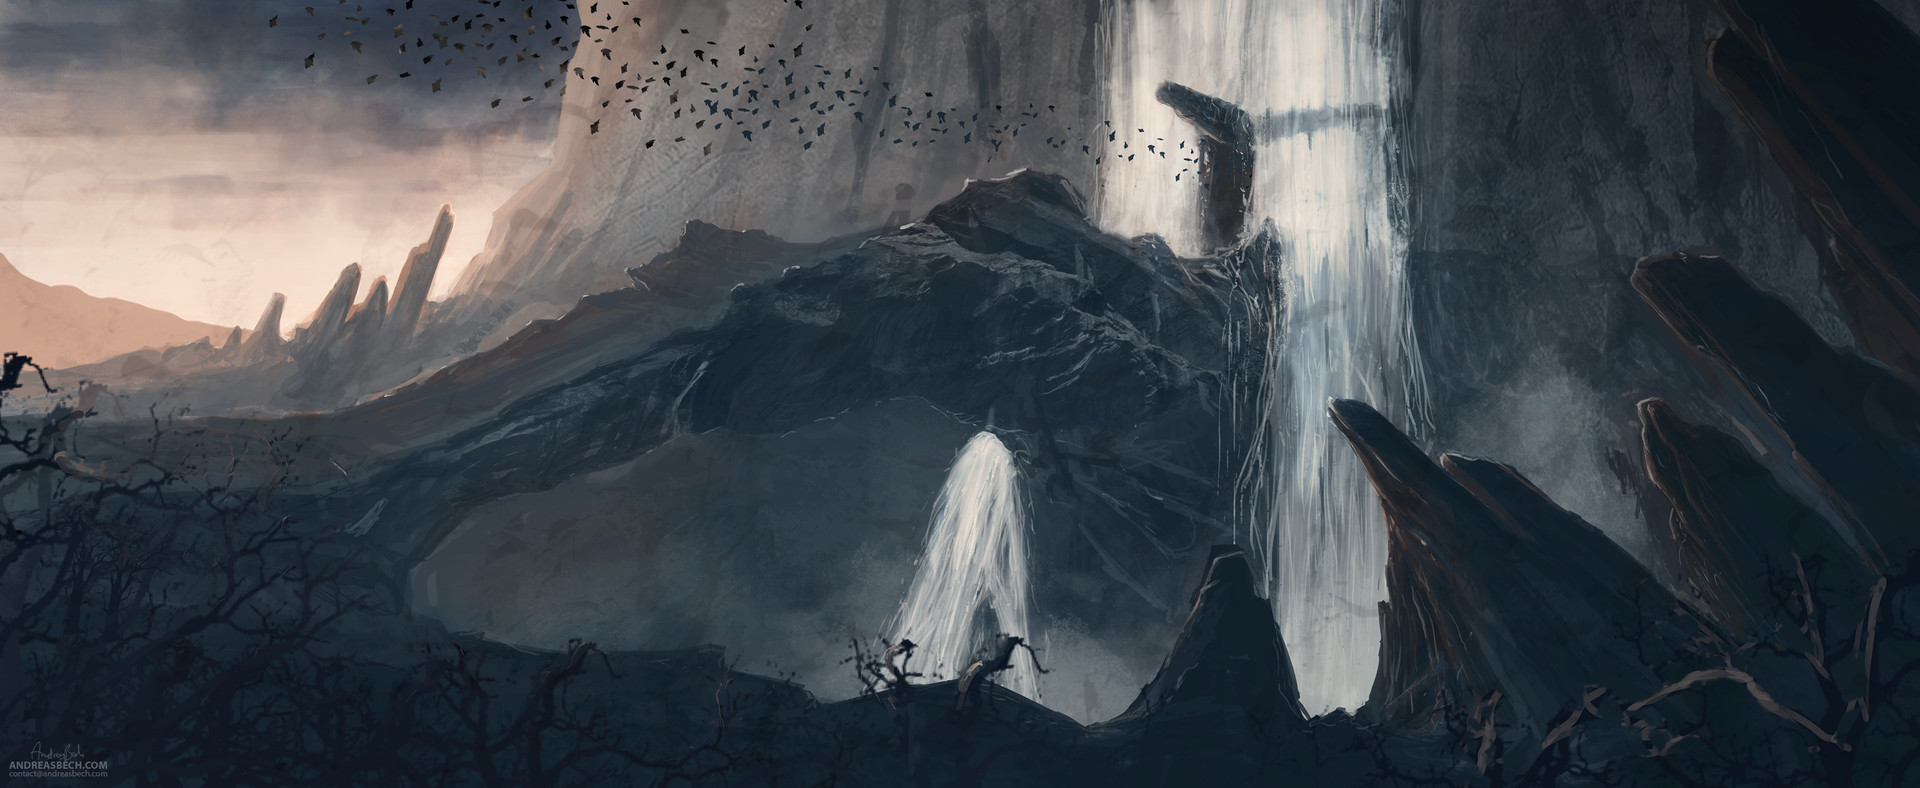 Andreas bech batcave sketch 3000pxw